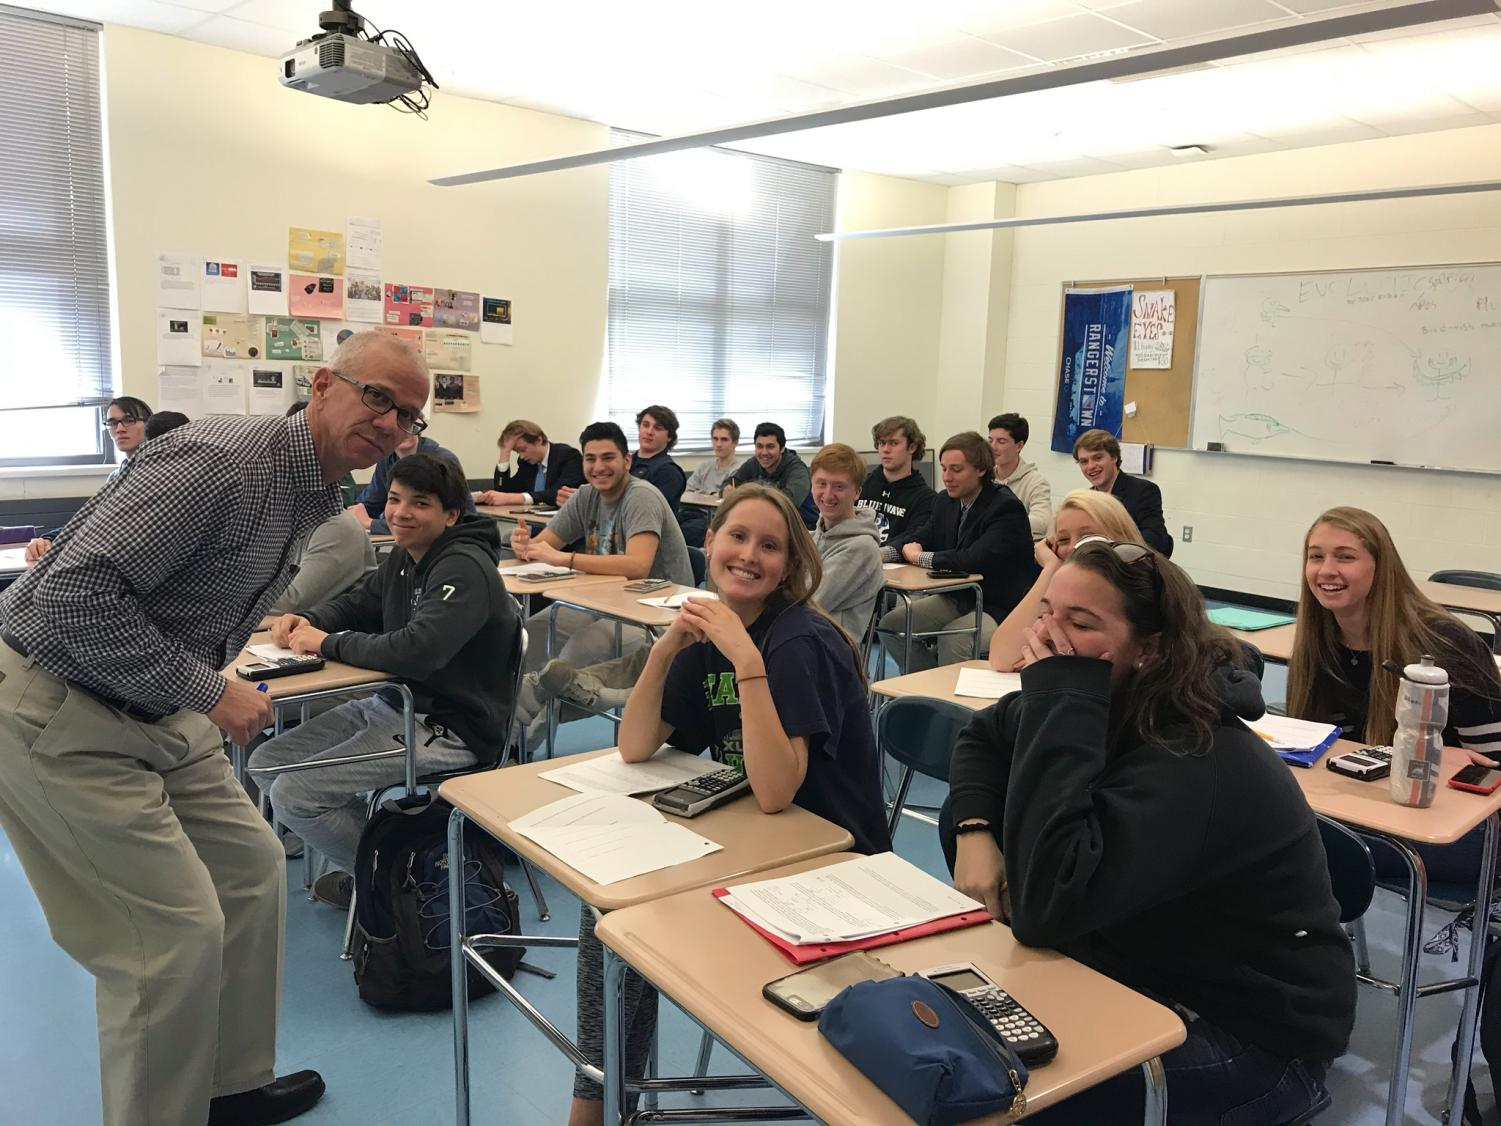 Mr. Coppock's statistic class smiles after accomplishing their work